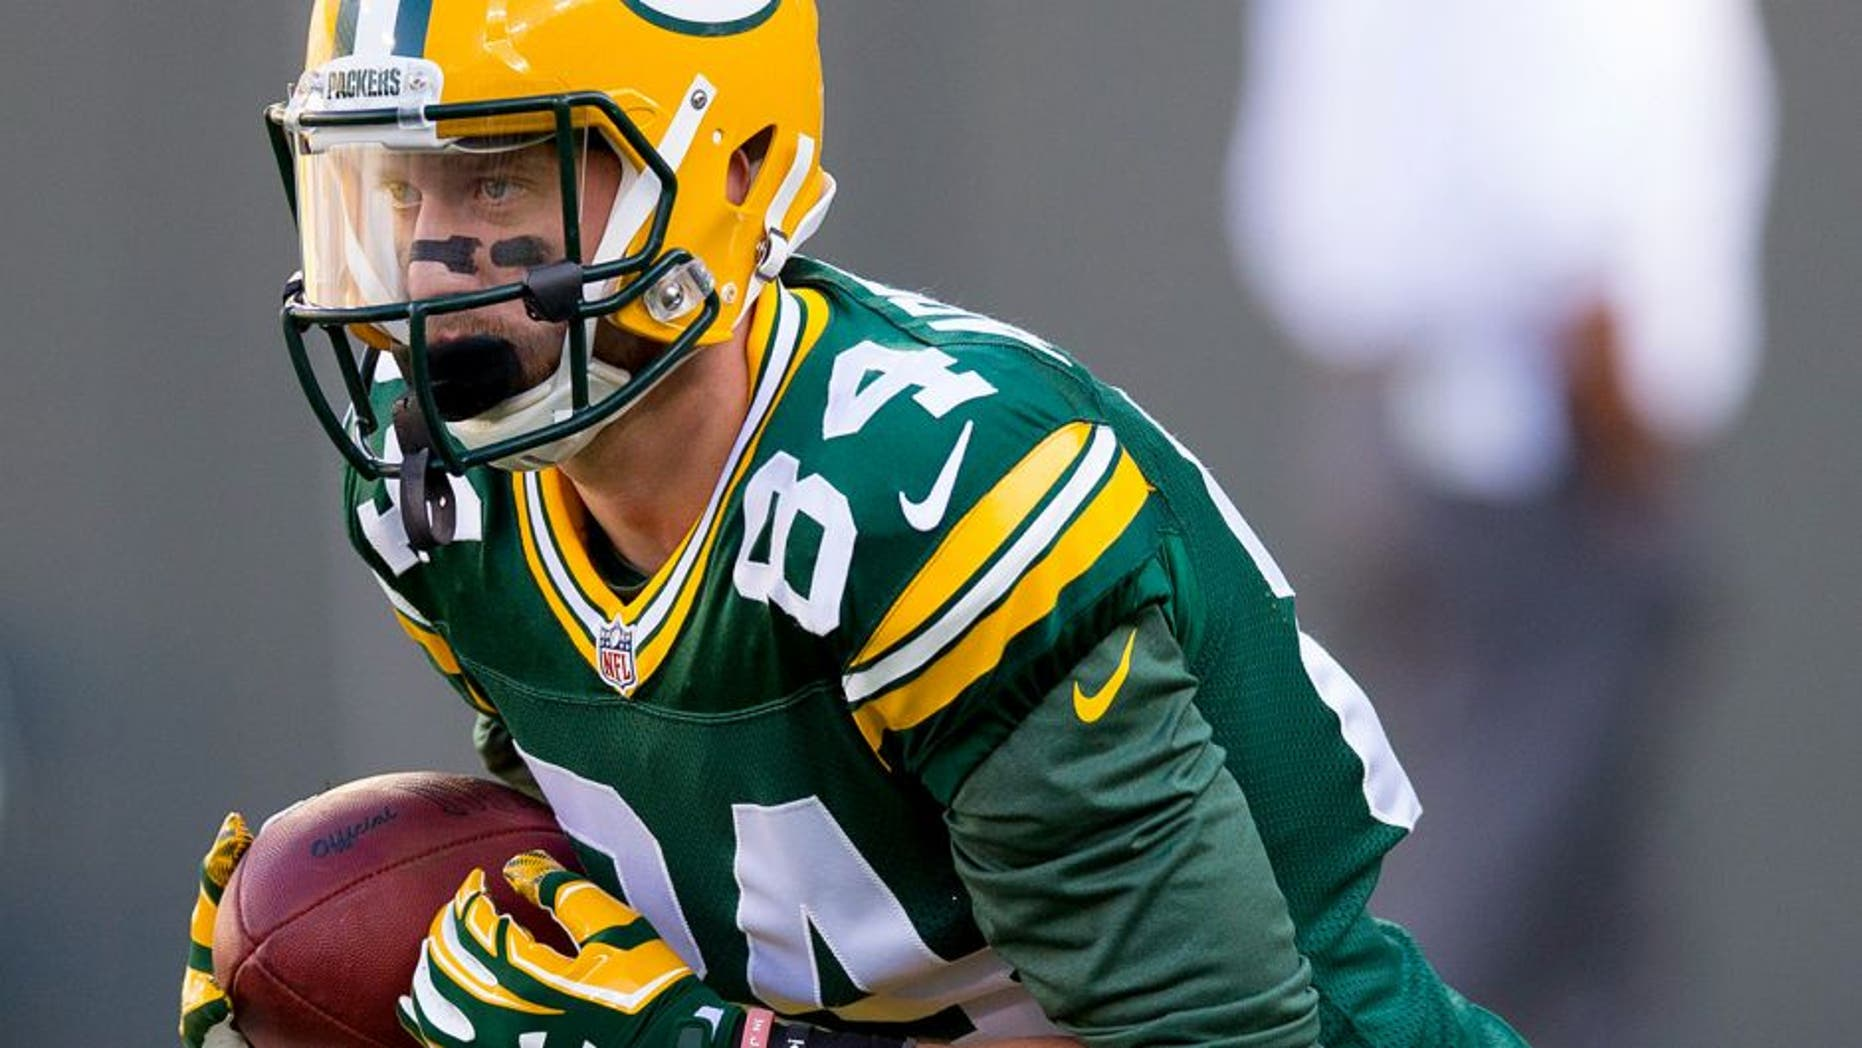 Sep 3, 2015; Green Bay, WI, USA; Green Bay Packers wide receiver Jared Abbrederis (84) during warmups prior to the game against the New Orleans Saints at Lambeau Field. Green Bay won 38-10. Mandatory Credit: Jeff Hanisch-USA TODAY Sports